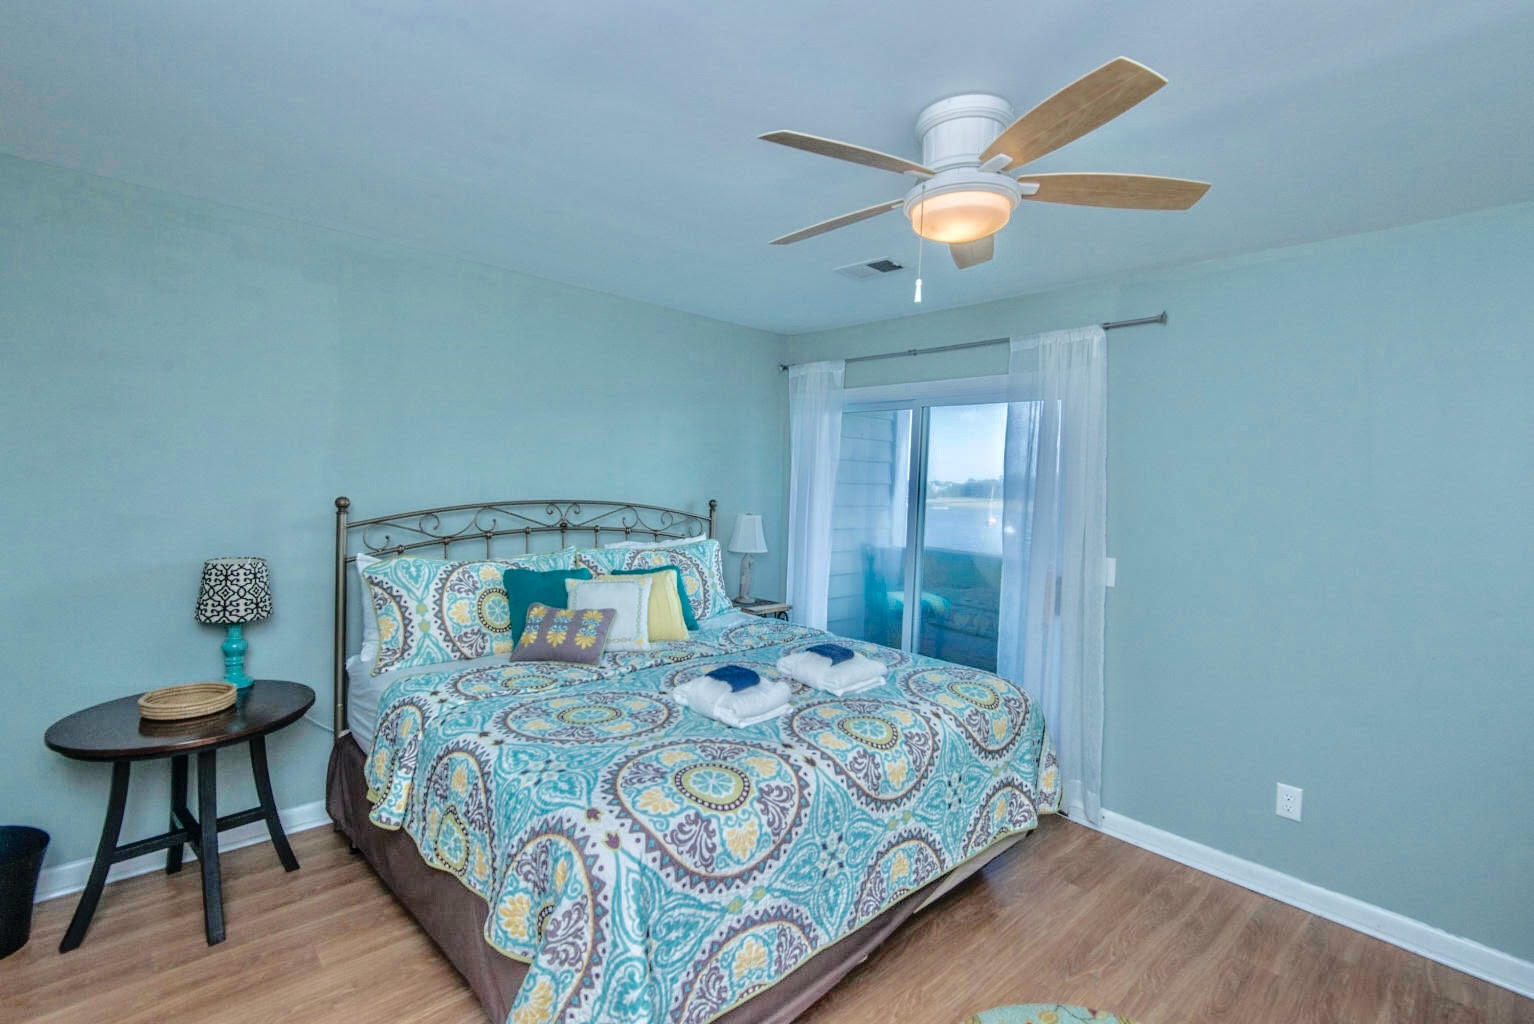 Mariners Cay Homes For Sale - 42 Mariners Cay, Folly Beach, SC - 19